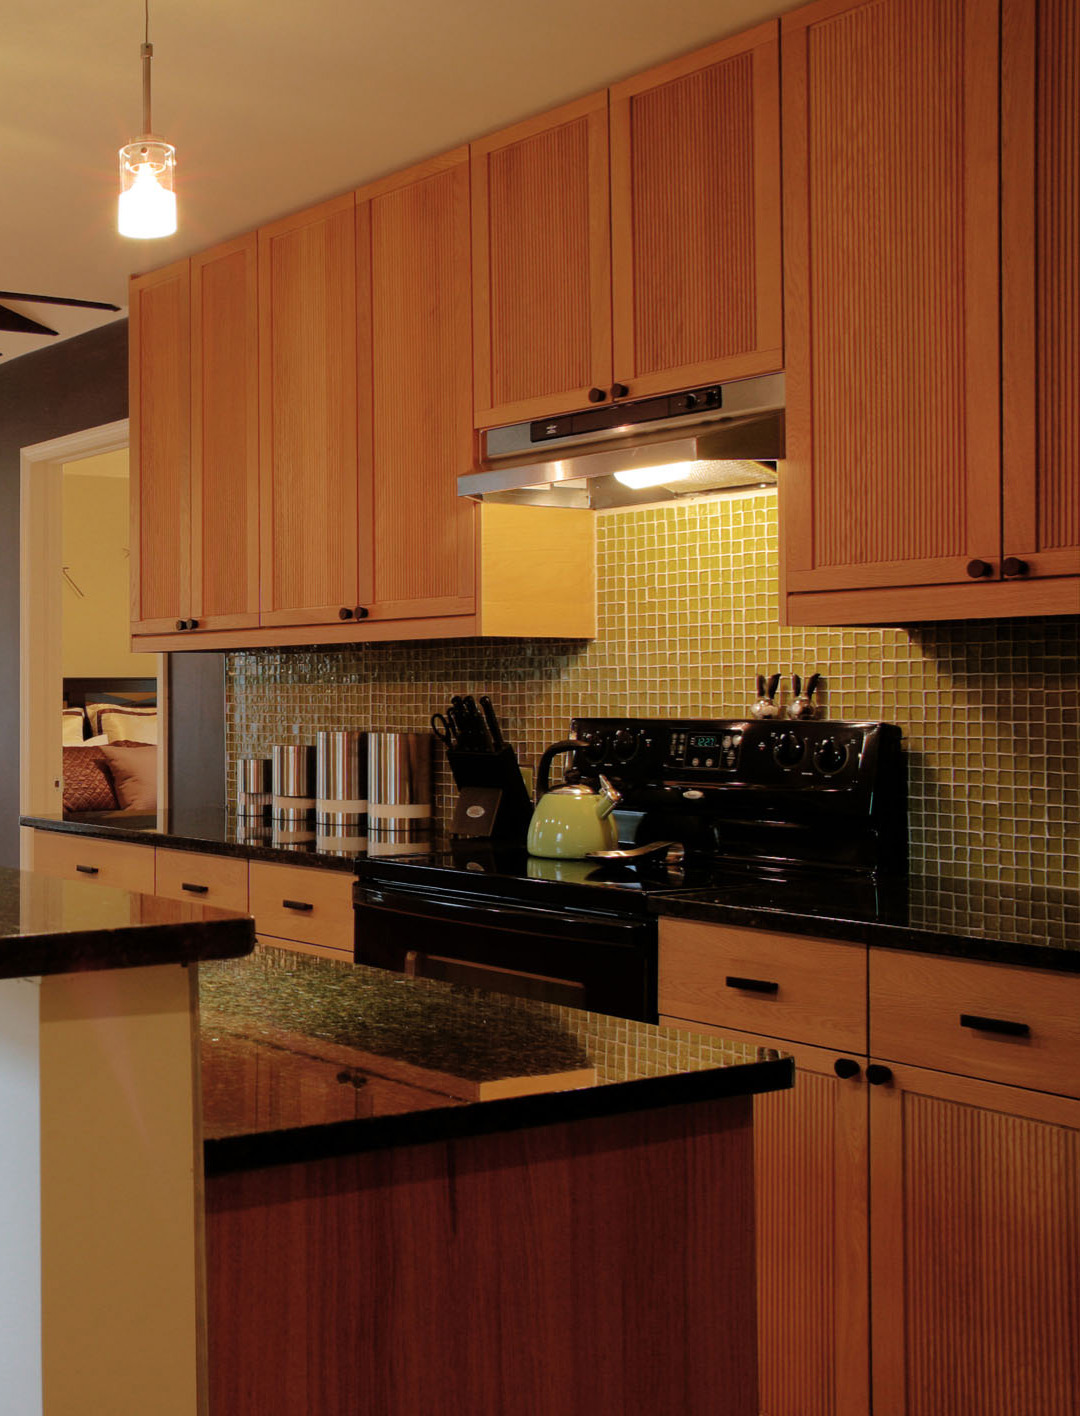 Kitchen cabinet doors in bangalore first time in india architect - The Truth About Ikea Kitchen Cabinets